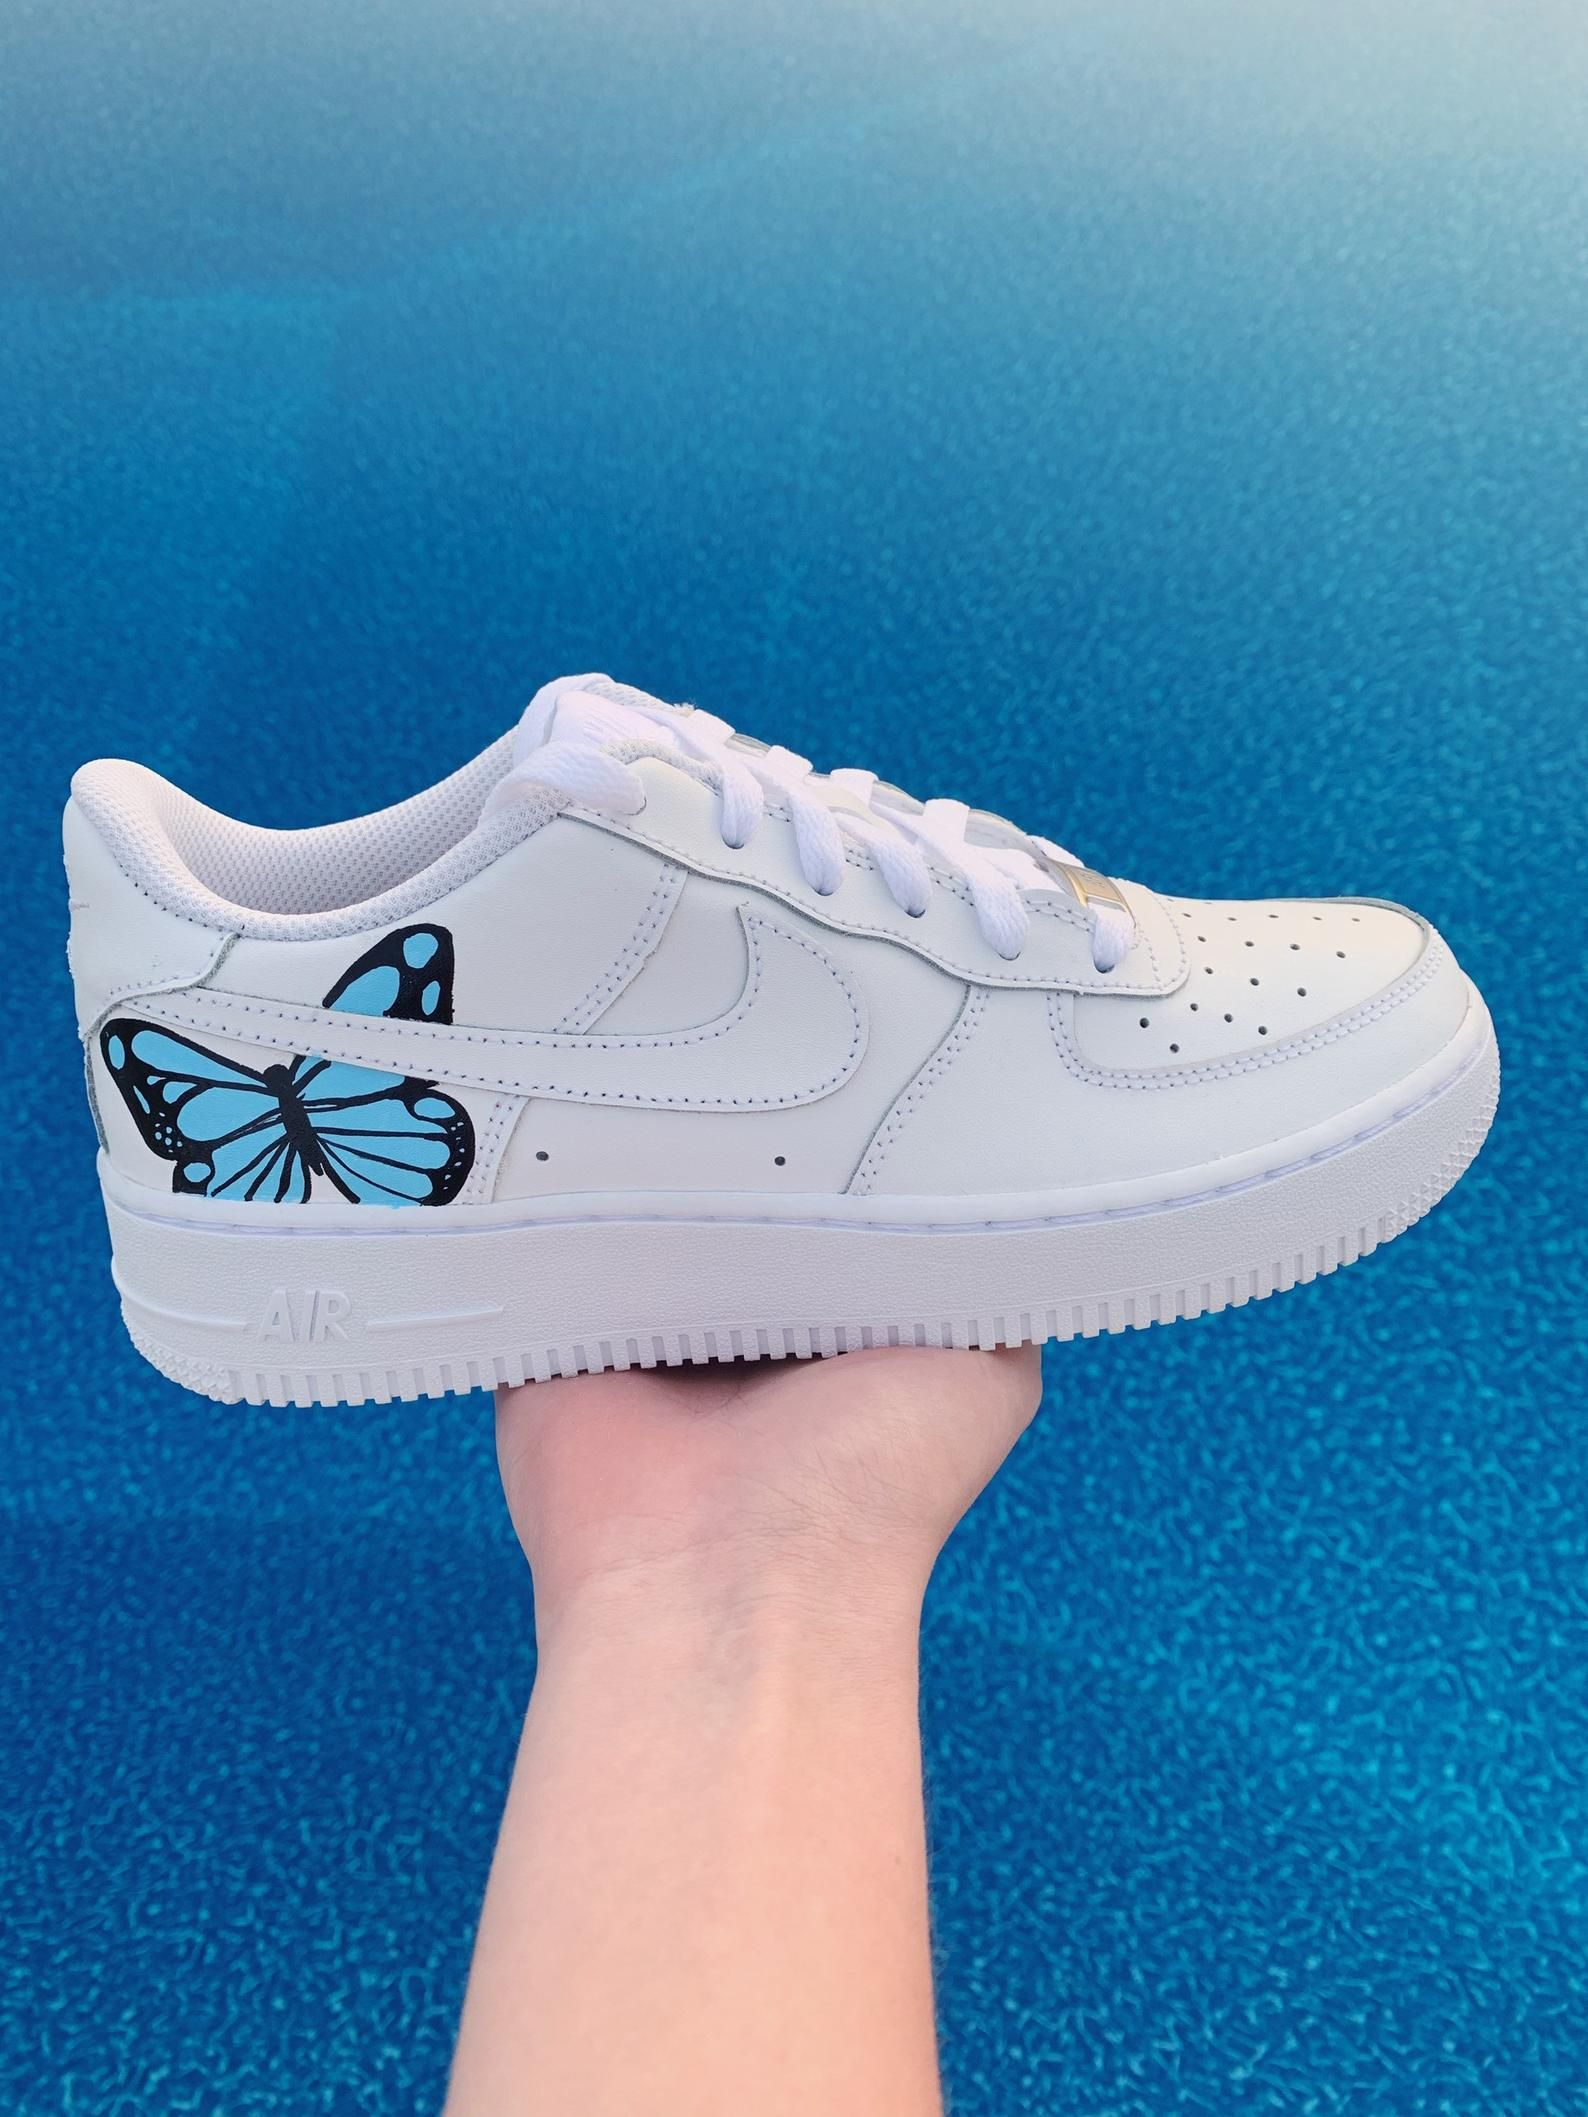 Butterfly Nike Air Force 1s AF1 Etsy in 2020 Nike